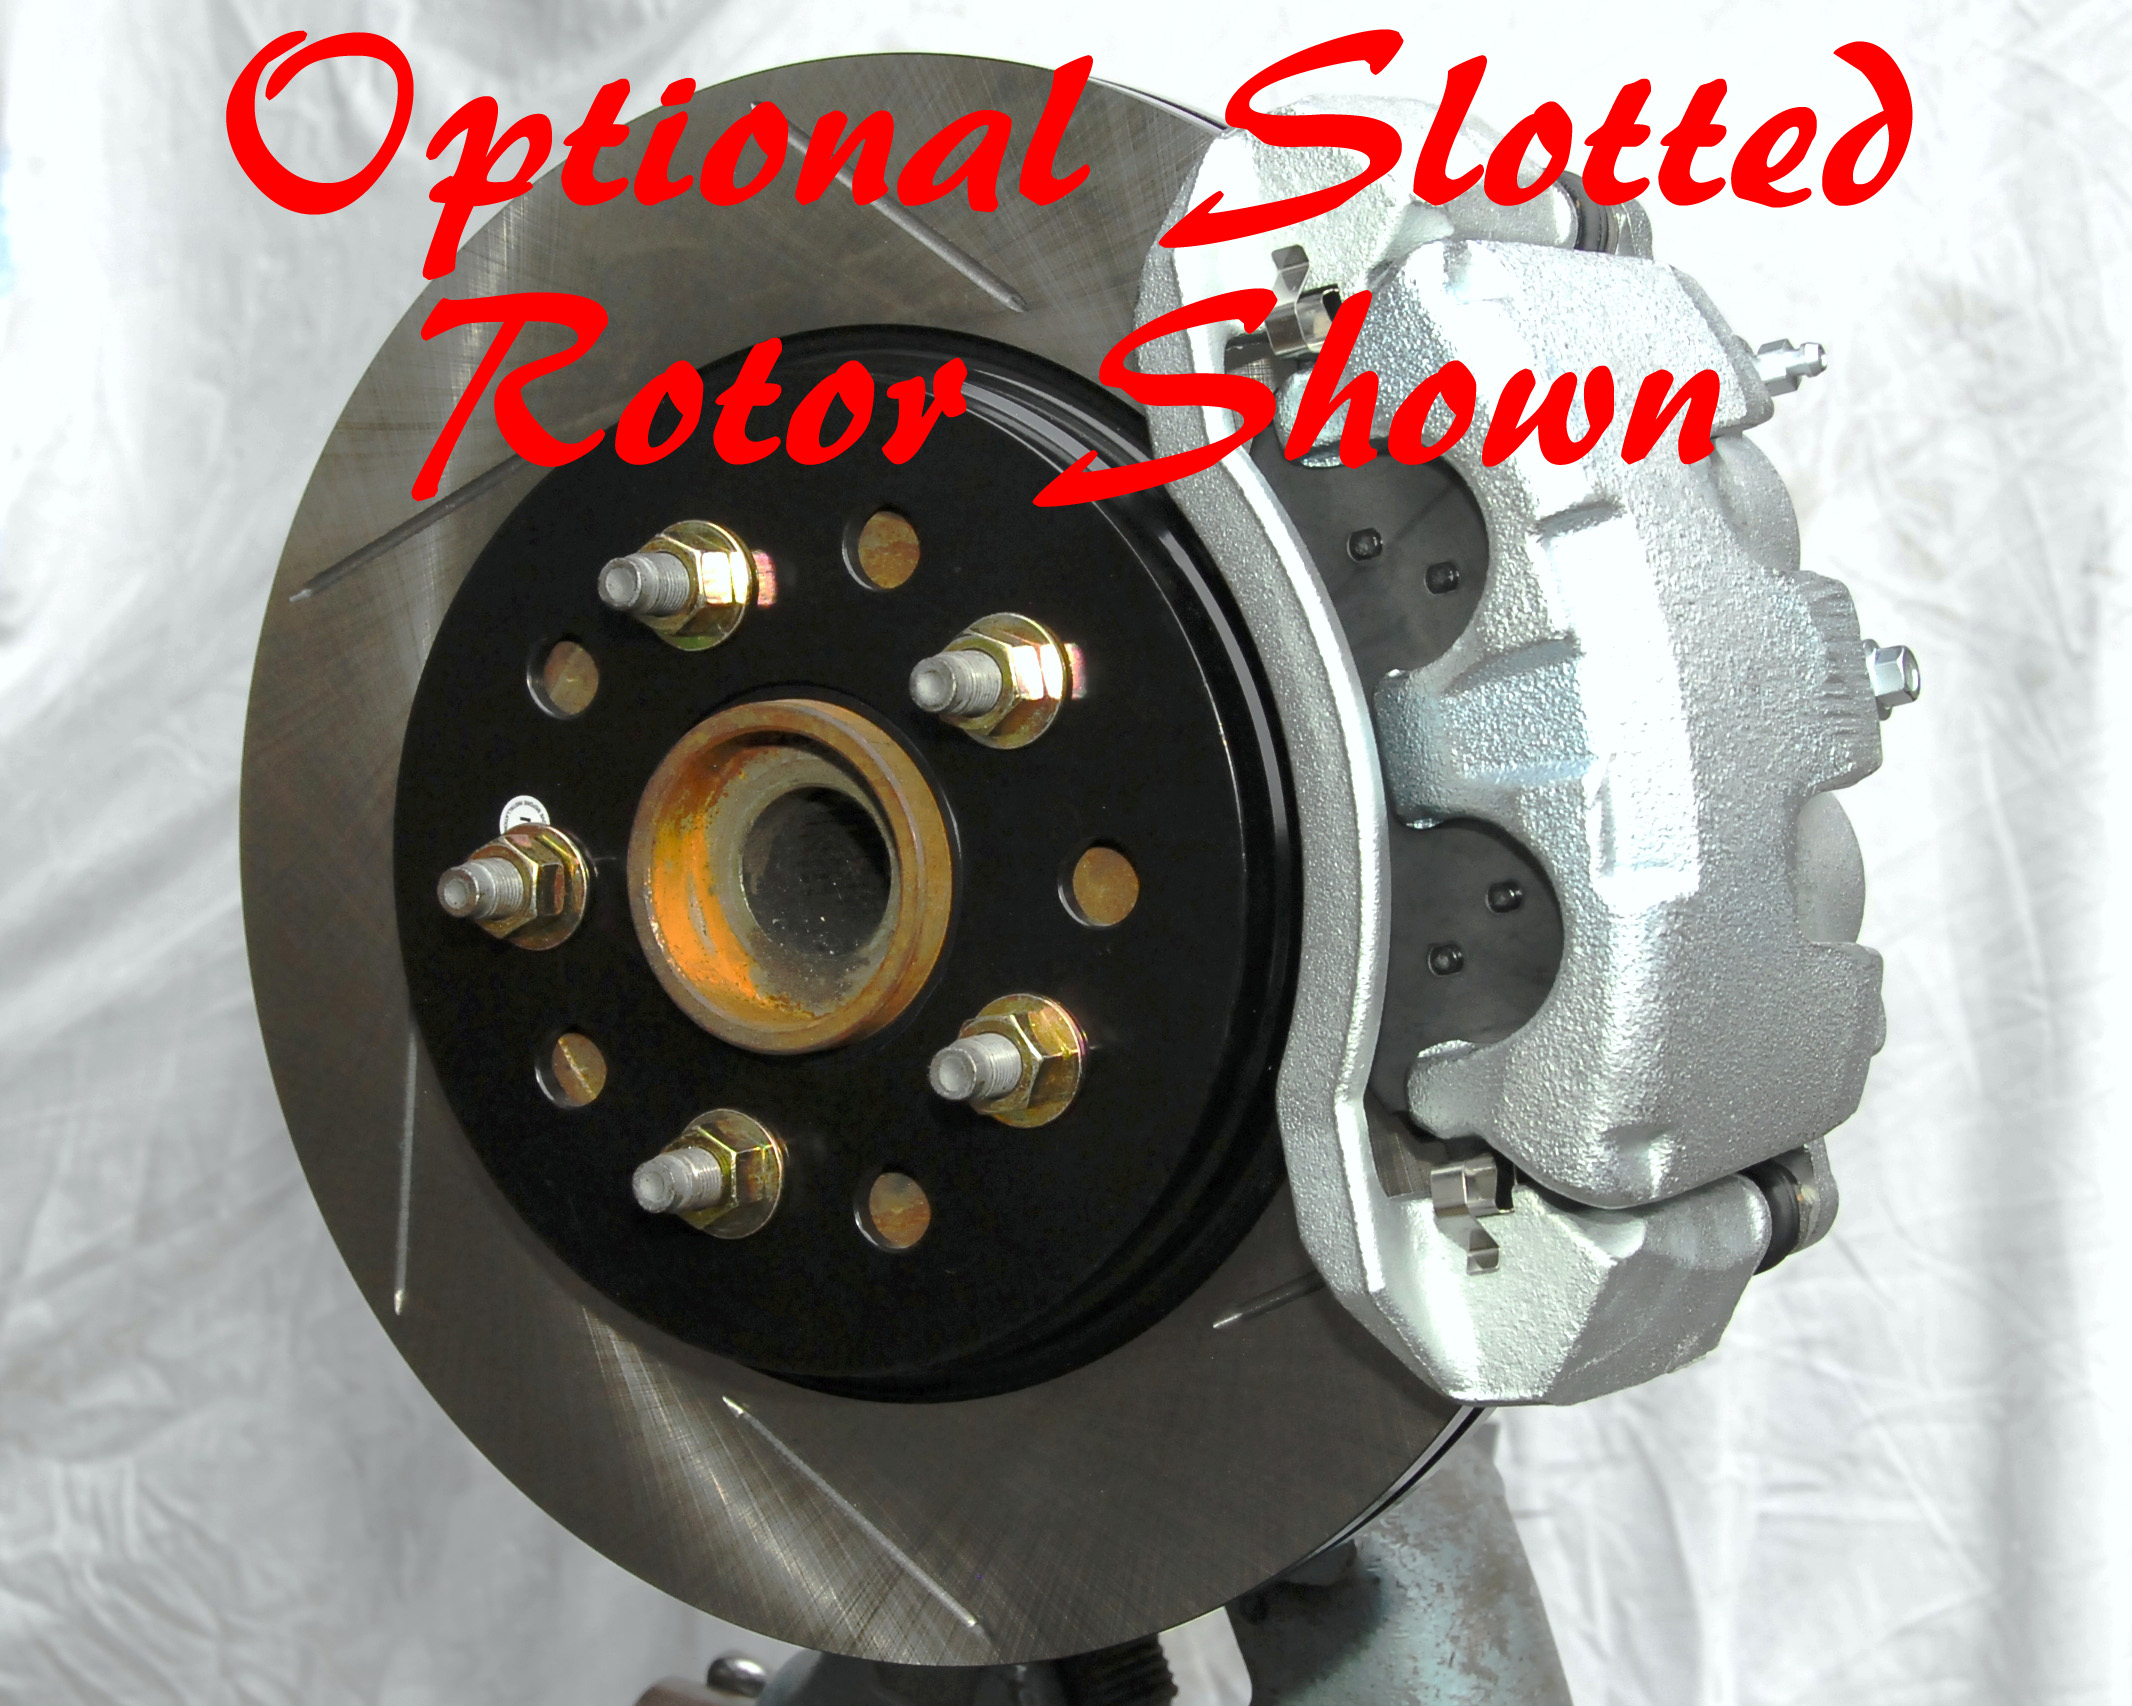 Rear Disc Brake Conversion Kits For the Dana 44 and the 8 8 Rear